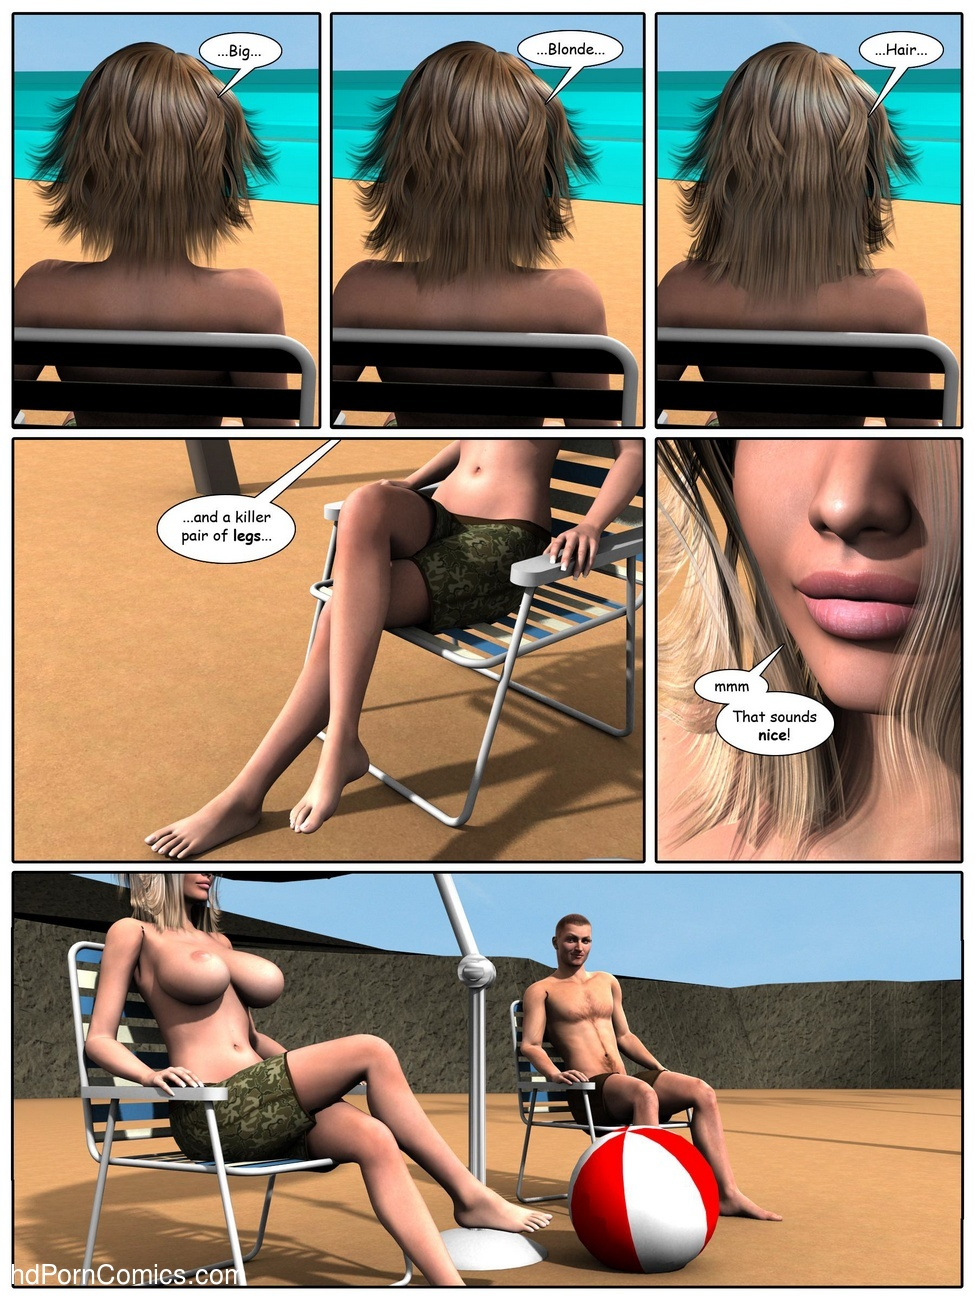 A Day At The Beach 6 free sex comic